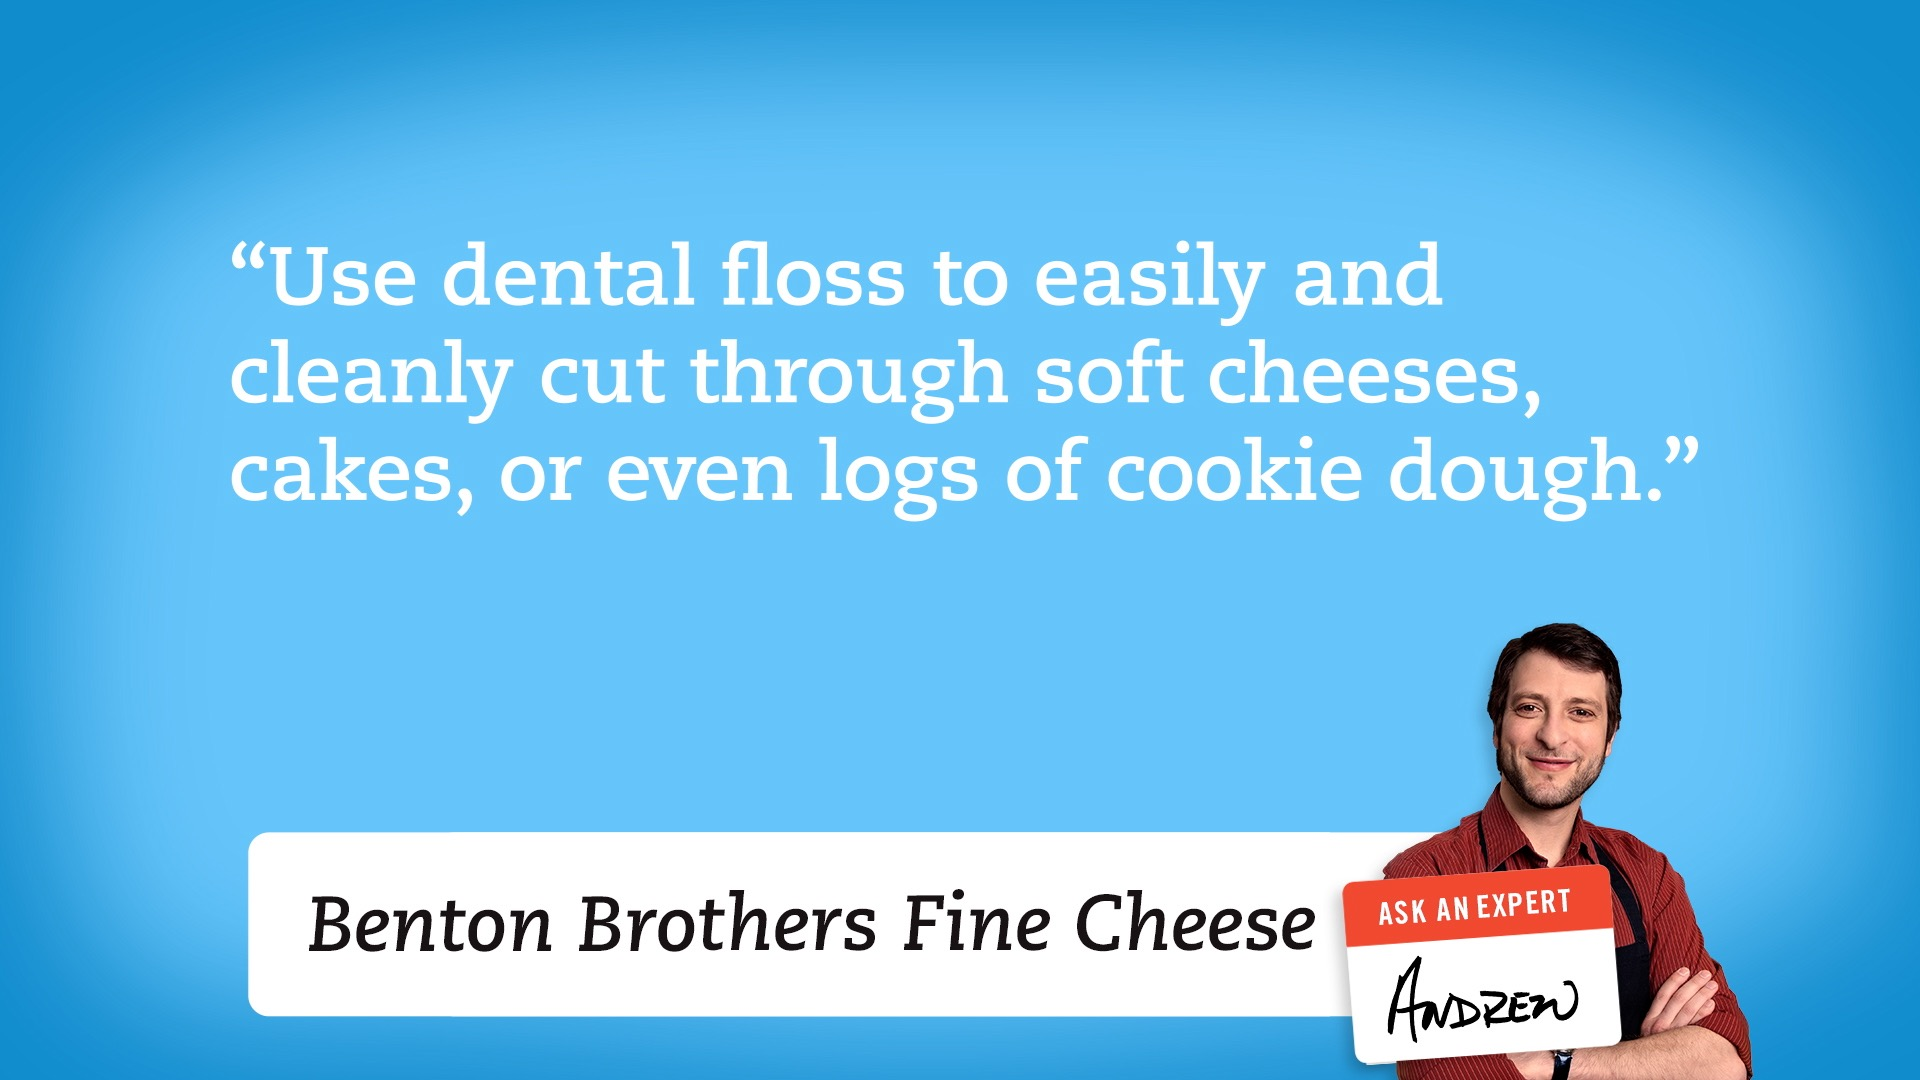 Use dental floss to easily and cleanly cut through soft cheeses, cakes, or even logs of cookie dough